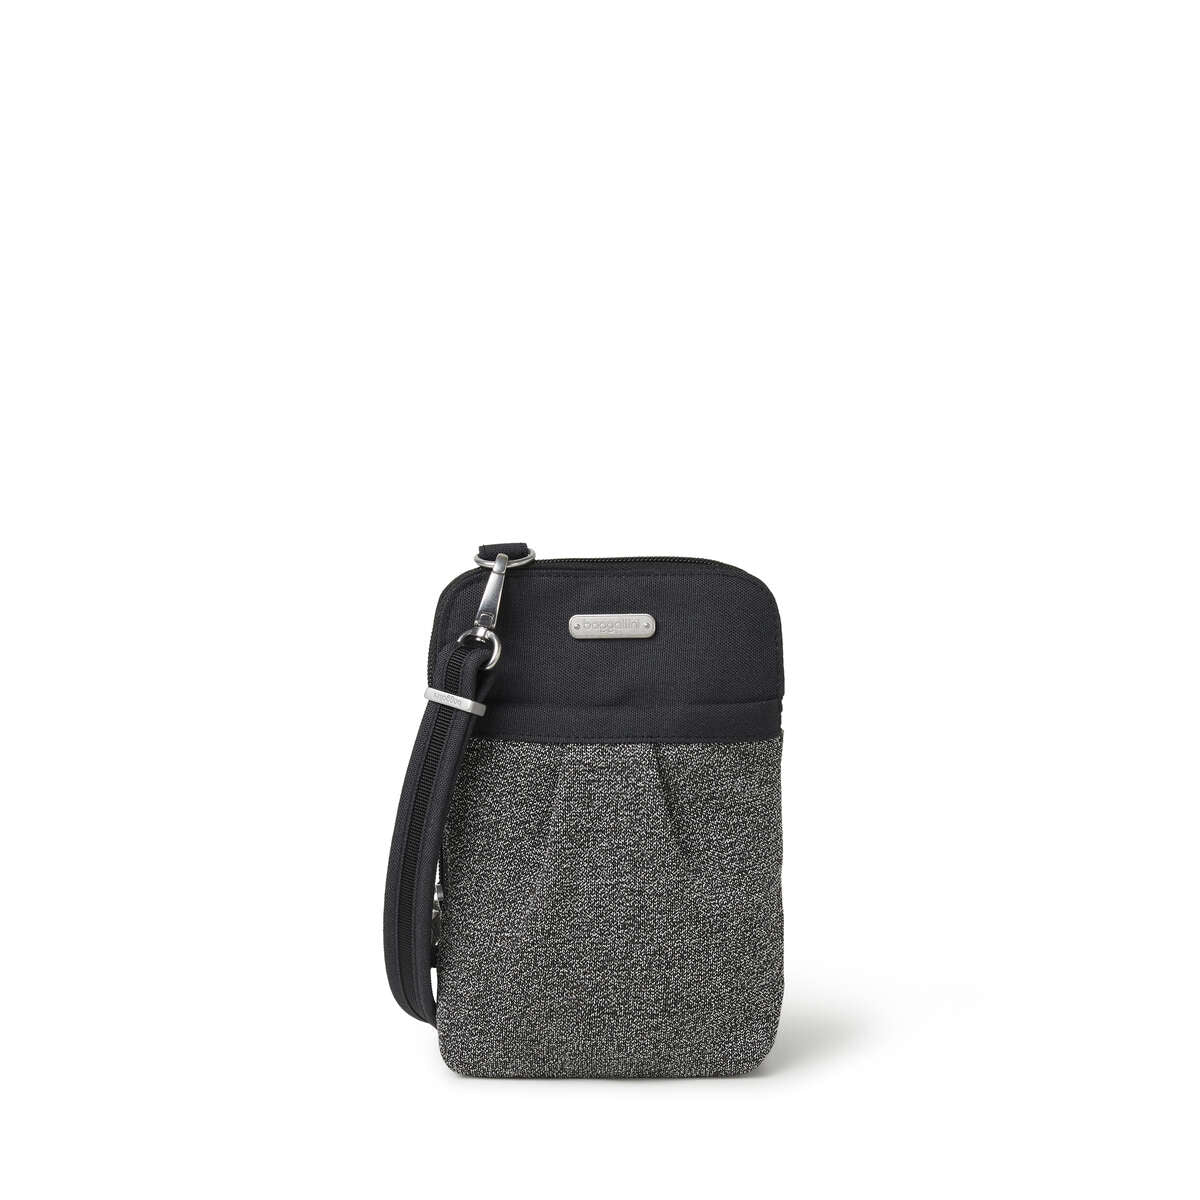 Excursion Crossbody